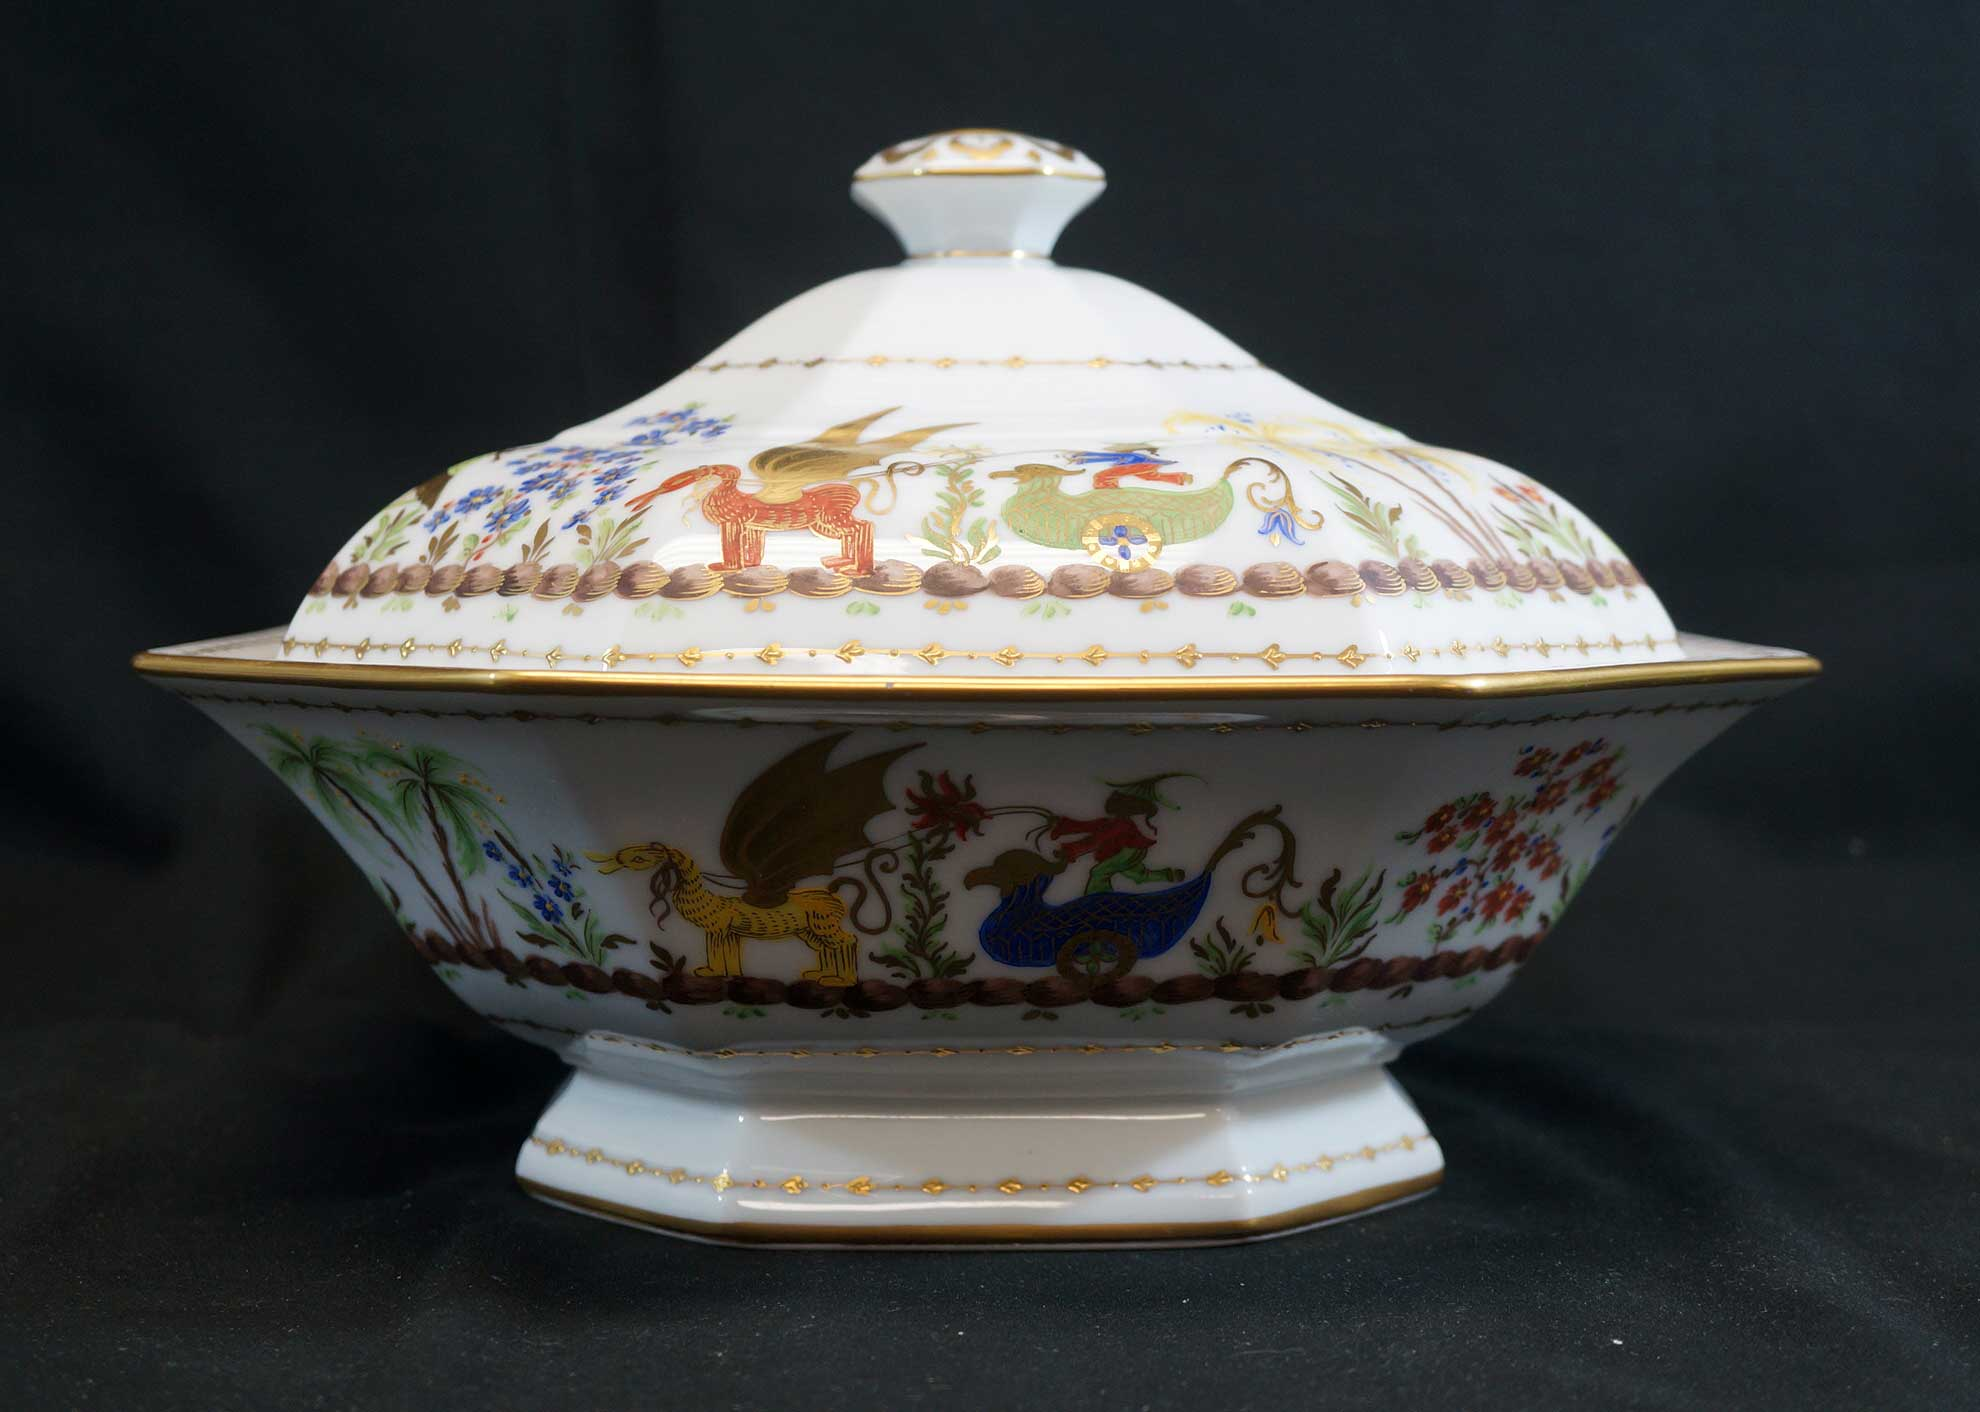 Tiffany & Co. Cirque Chinois Covered Server